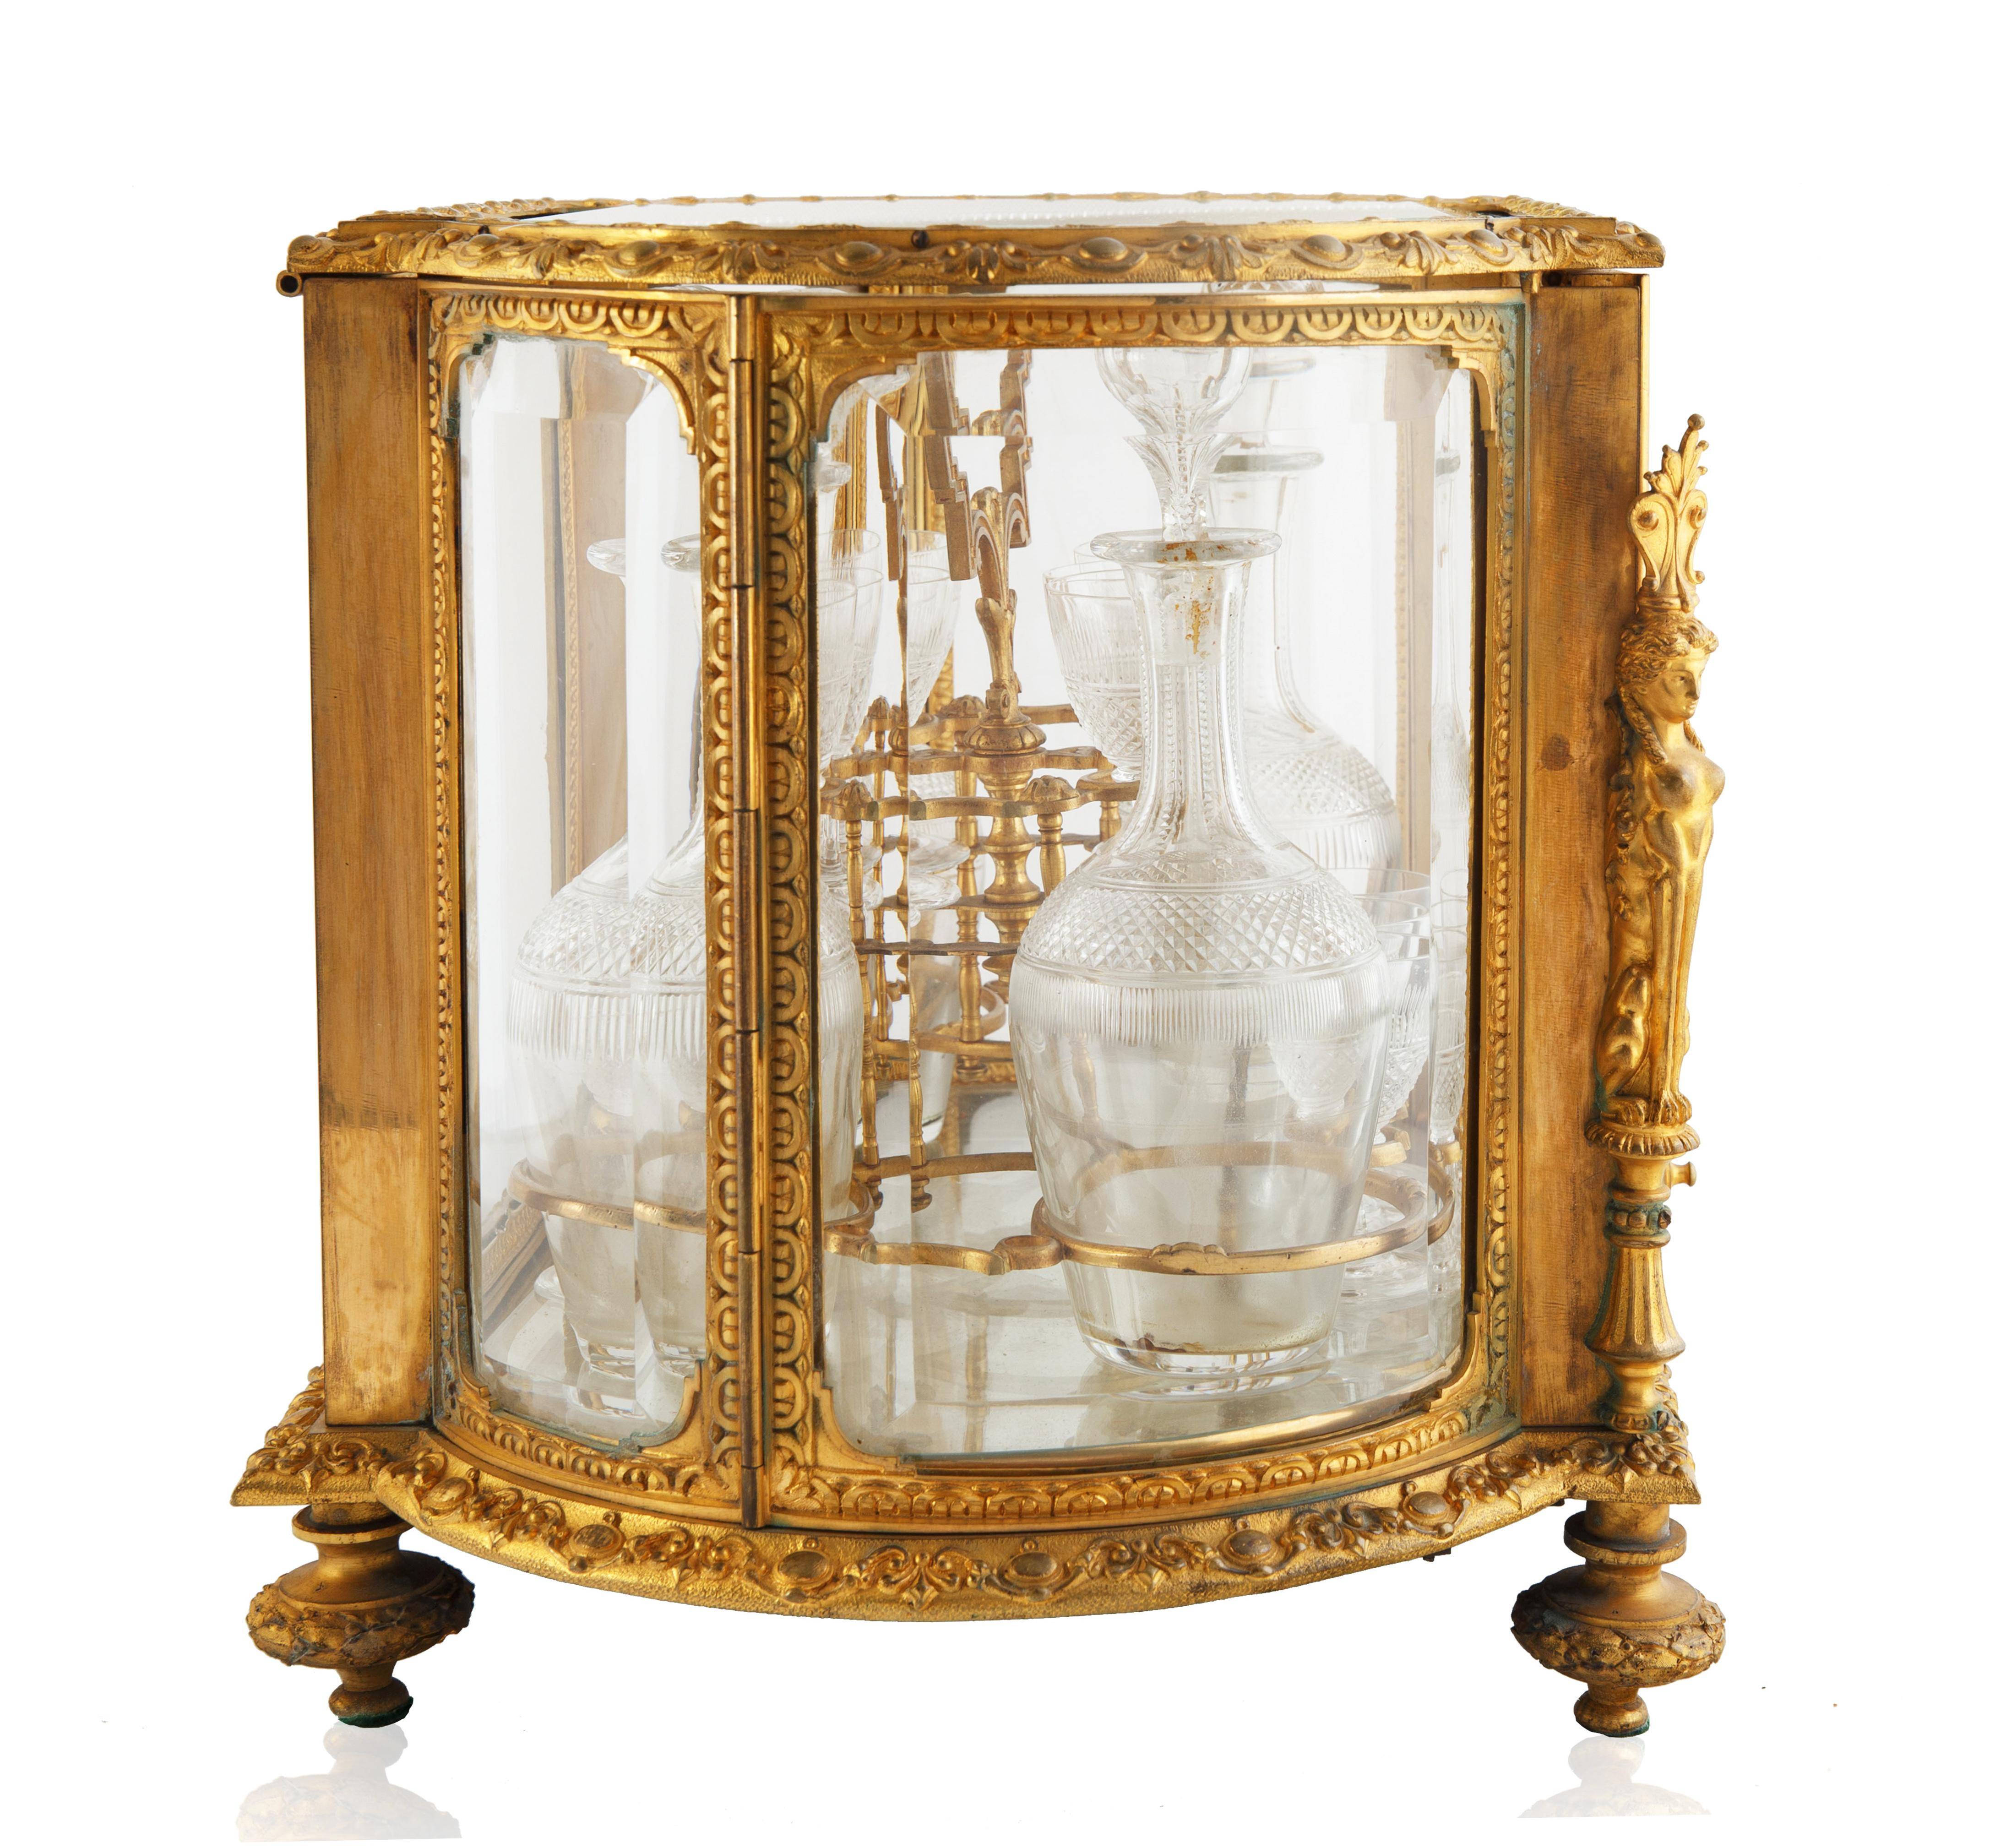 LATE 19TH-EARLY 20TH CENTURY FRENCH LOUIS XVI STYLE GILT BRONZE CAVE A LIQUEUR - Image 4 of 7